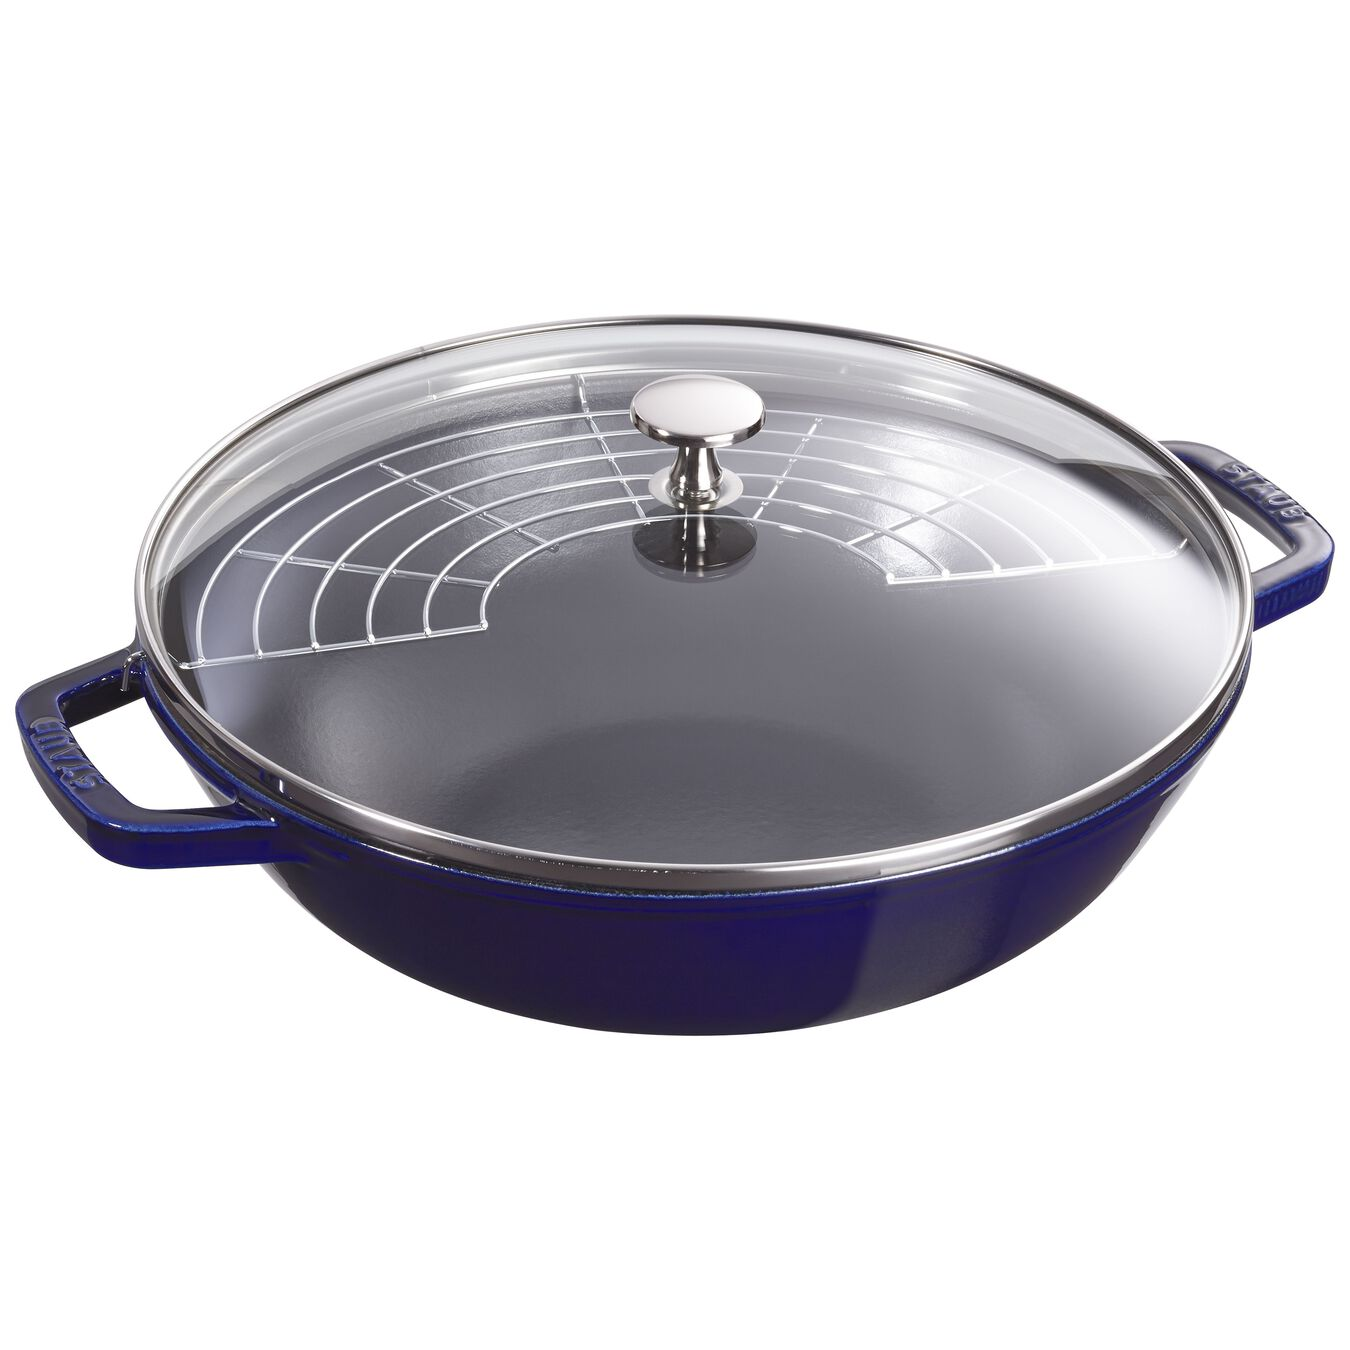 Wok with glass lid 30 cm,,large 2